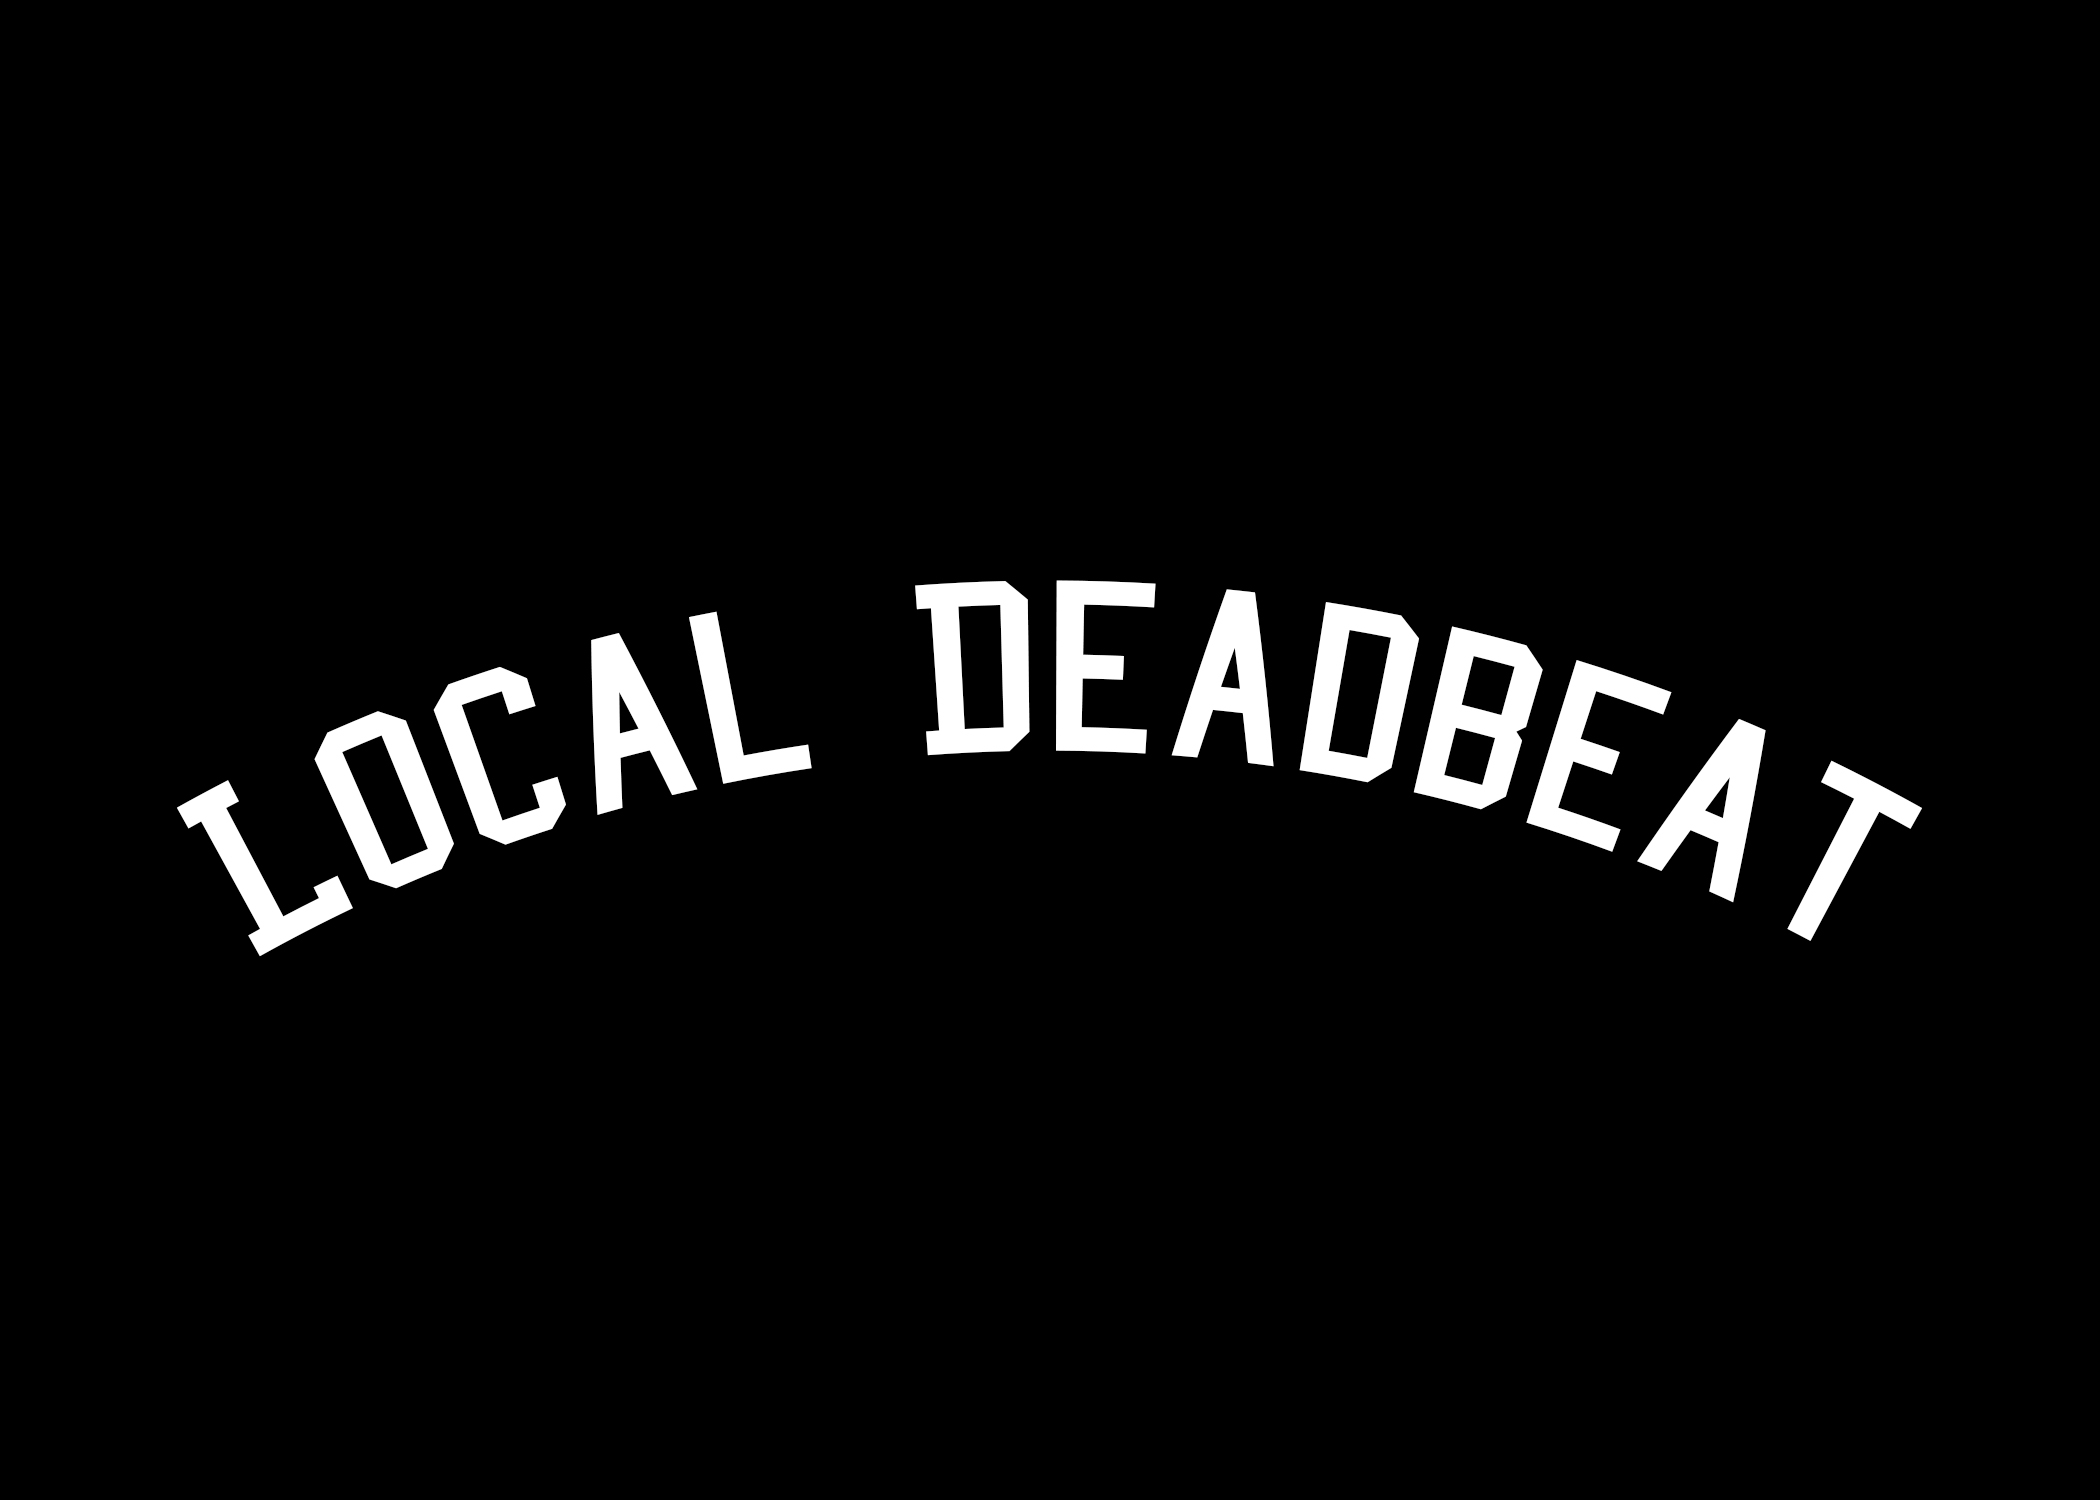 Local Deadbeat Agency